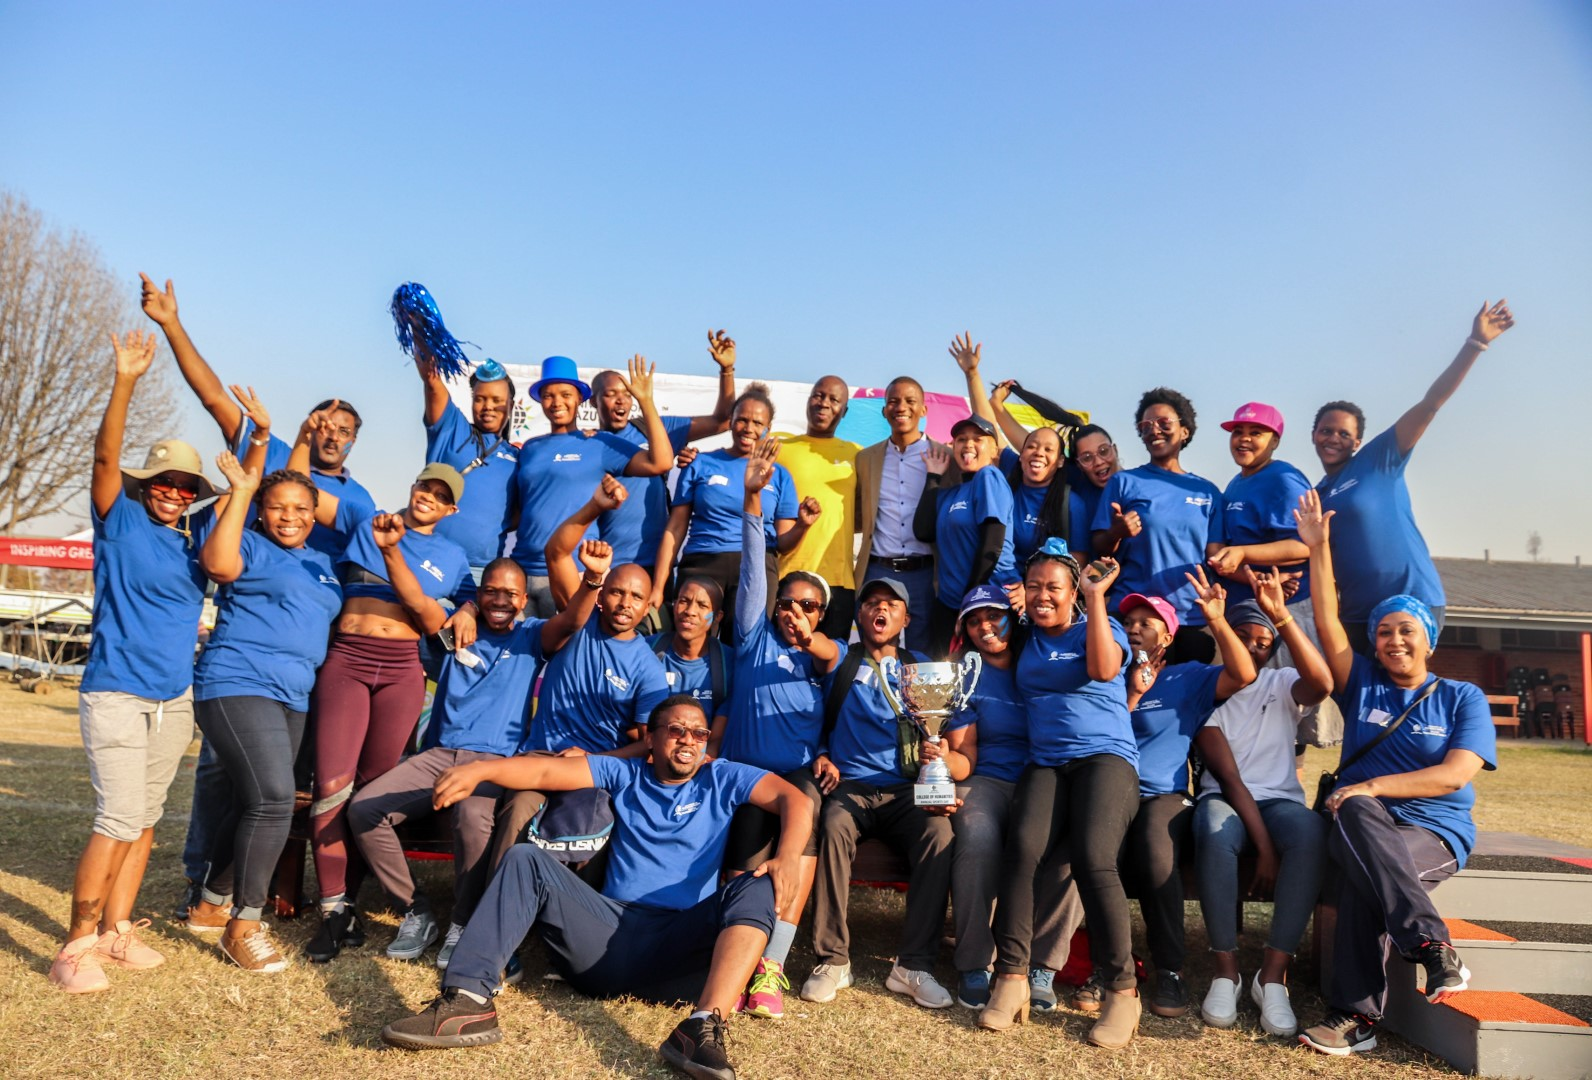 Sports Day champions Blue Fire celebrate their win